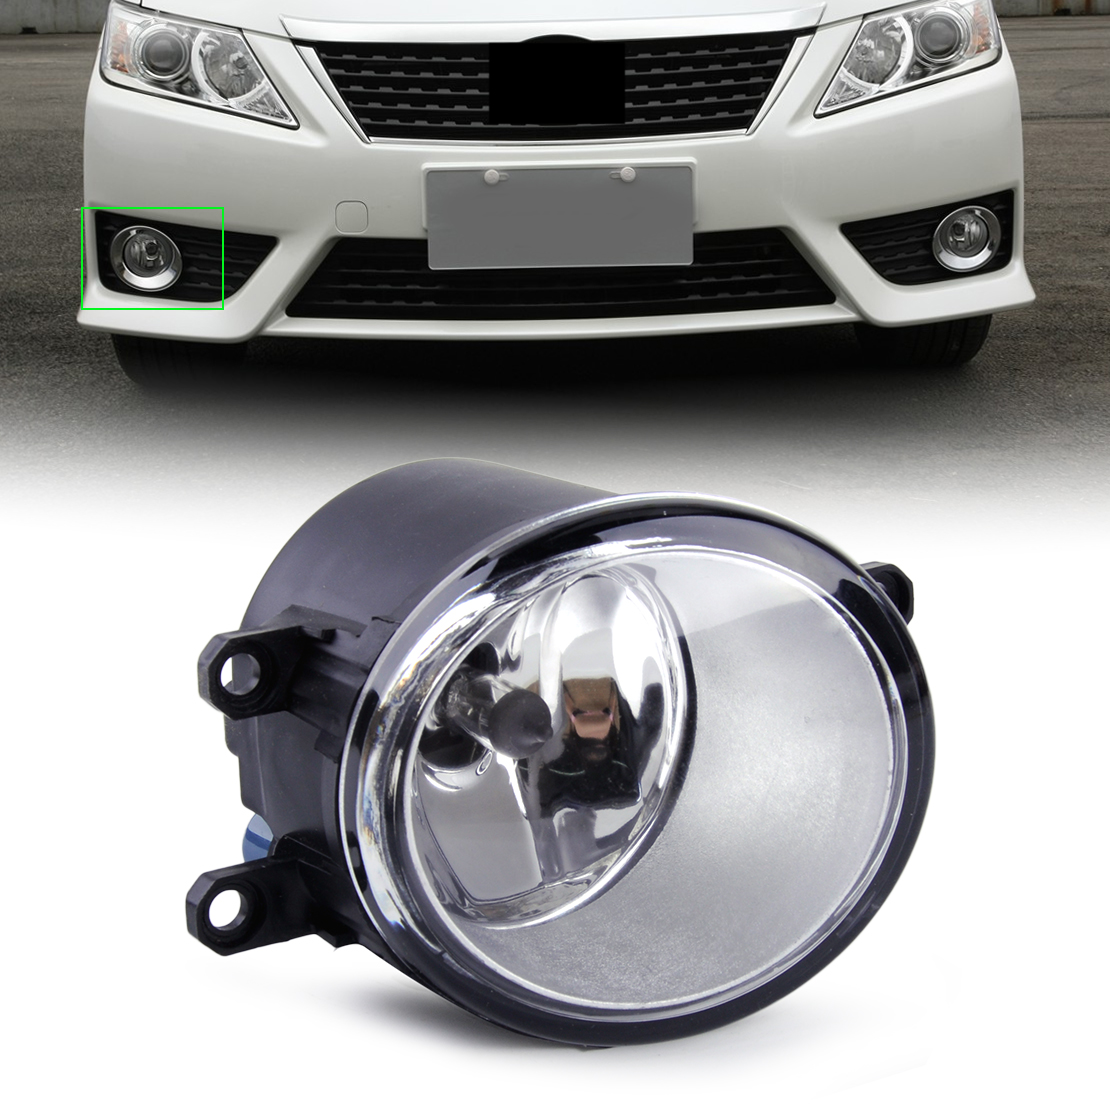 beler Front Right Clear <font><b>Fog</b></font> <font><b>Light</b></font> Driving Lamp 8121006070 with Bulb fit for Toyota Camry Corolla Matrix Yaris <font><b>Lexus</b></font> <font><b>LX570</b></font> image